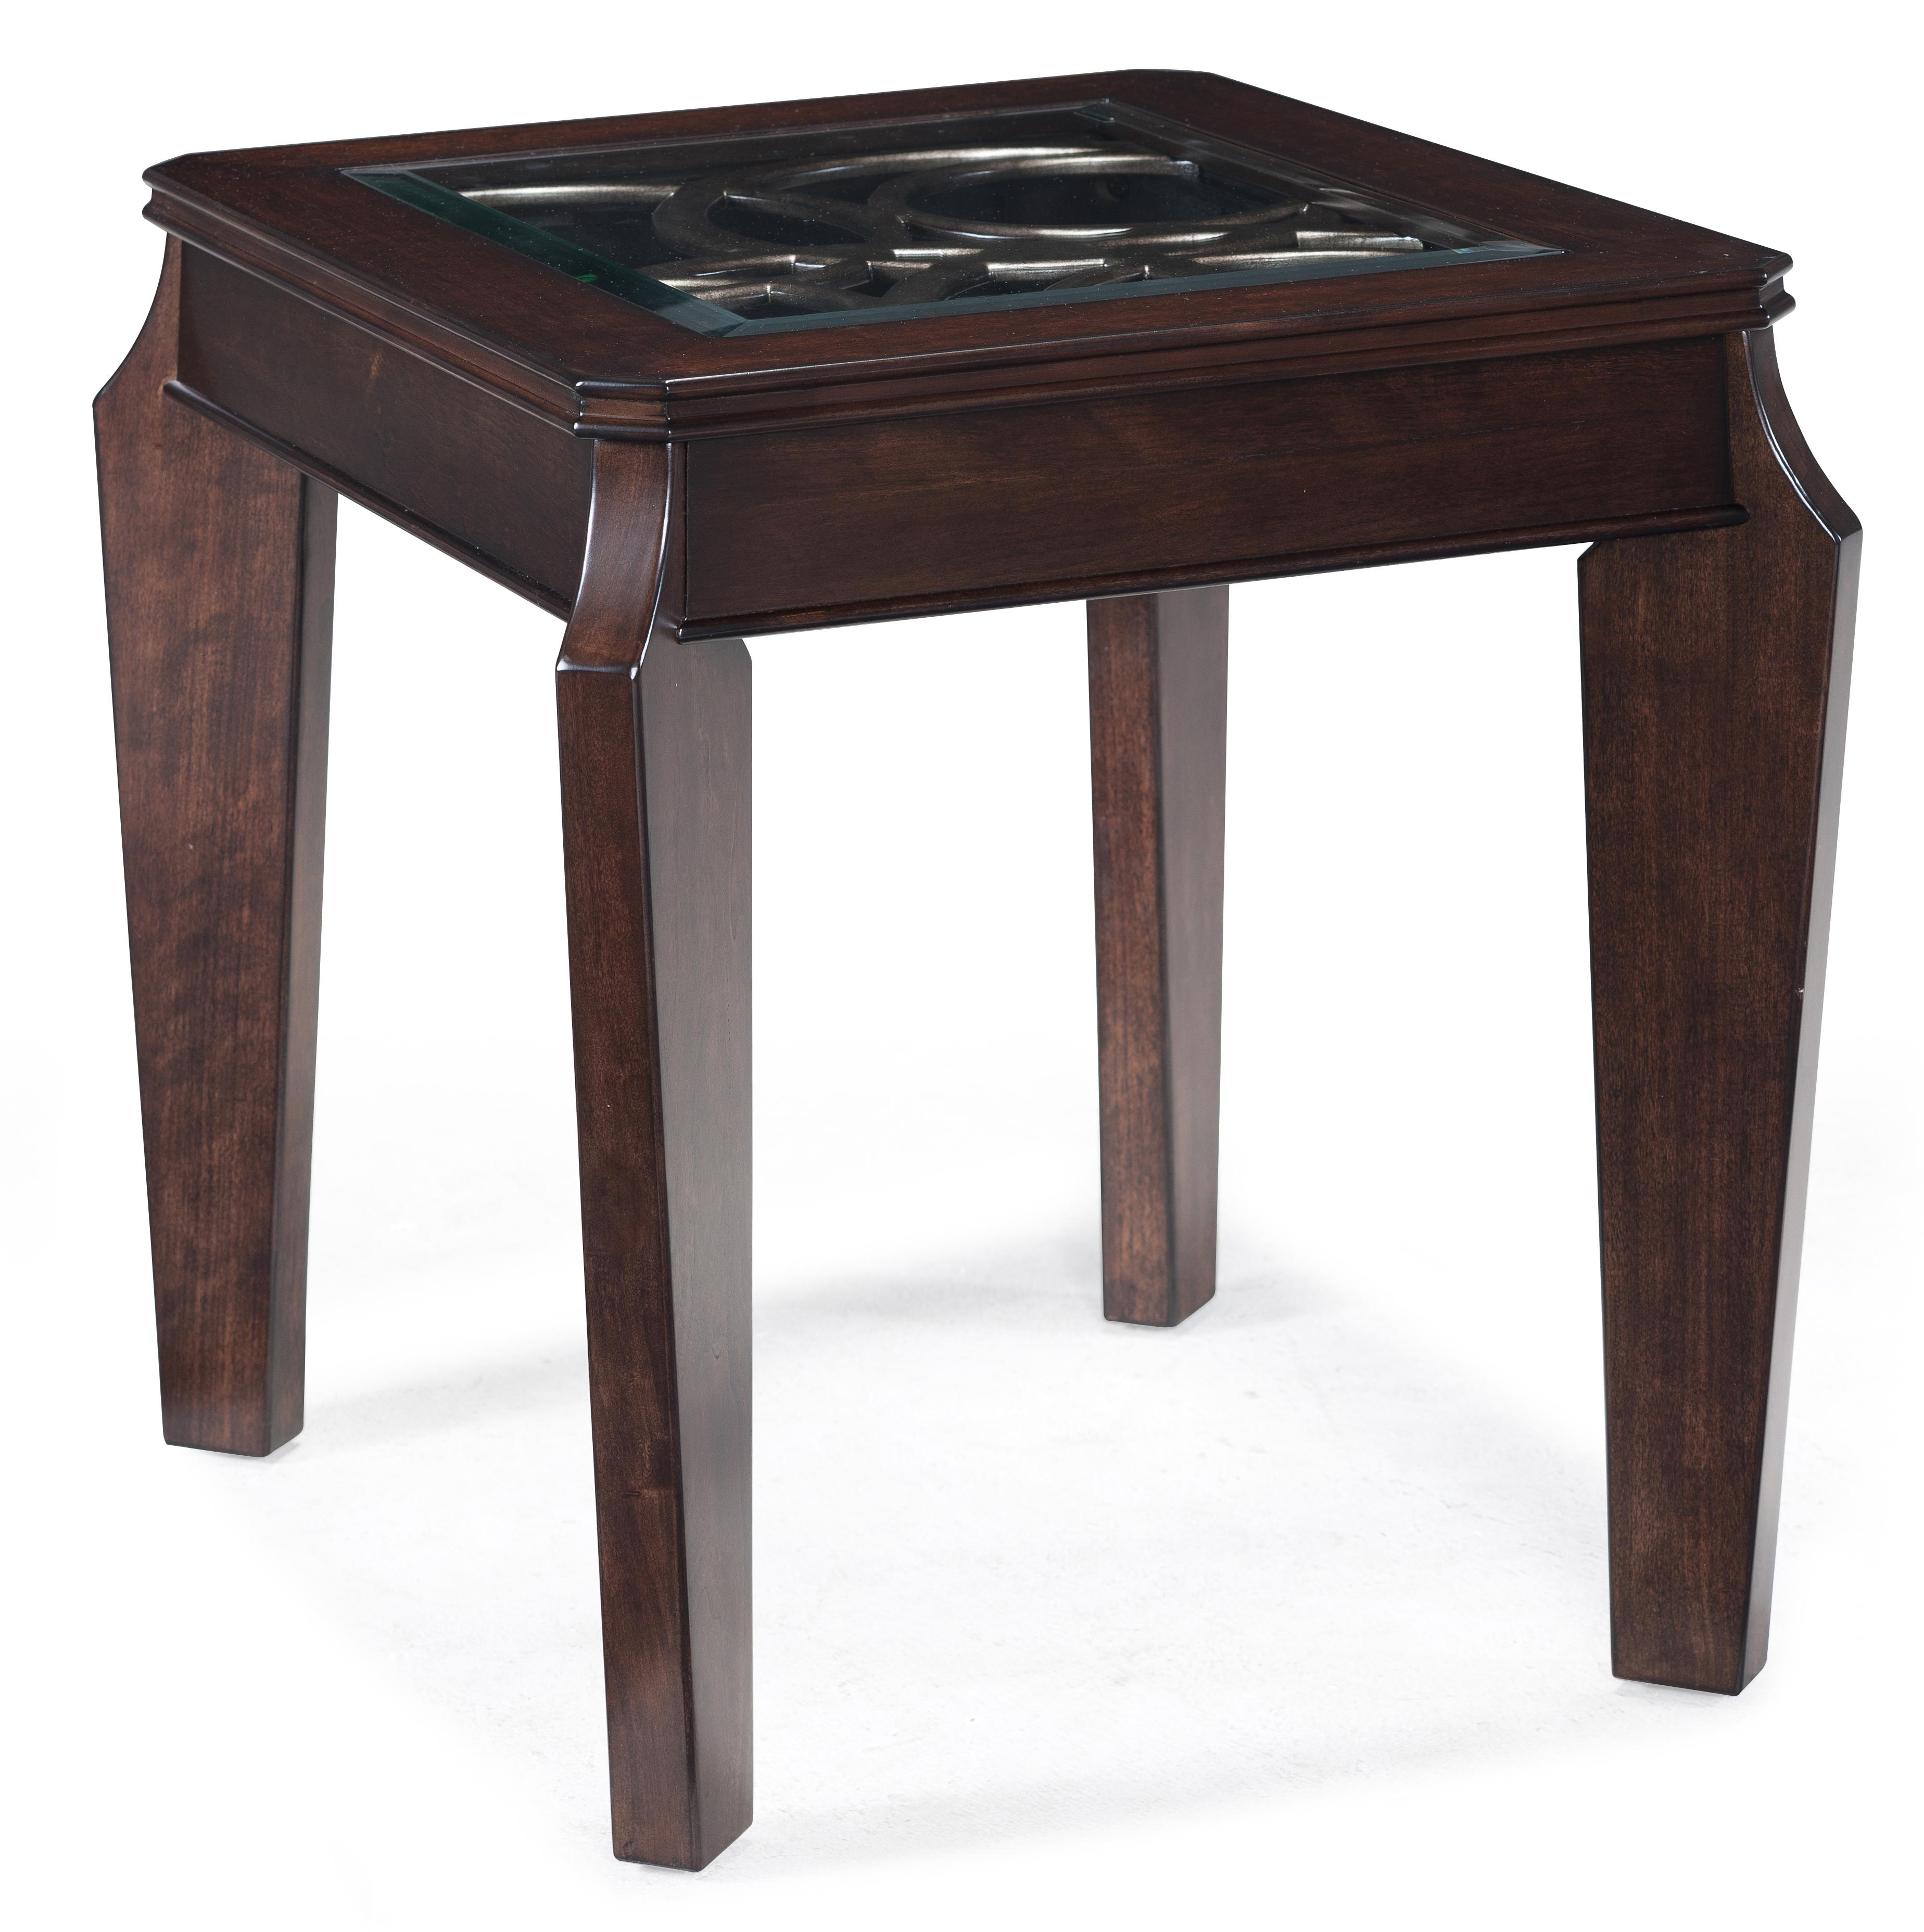 Magnussen Home Ombrio Rectangular End Table - Item Number: T2034-03